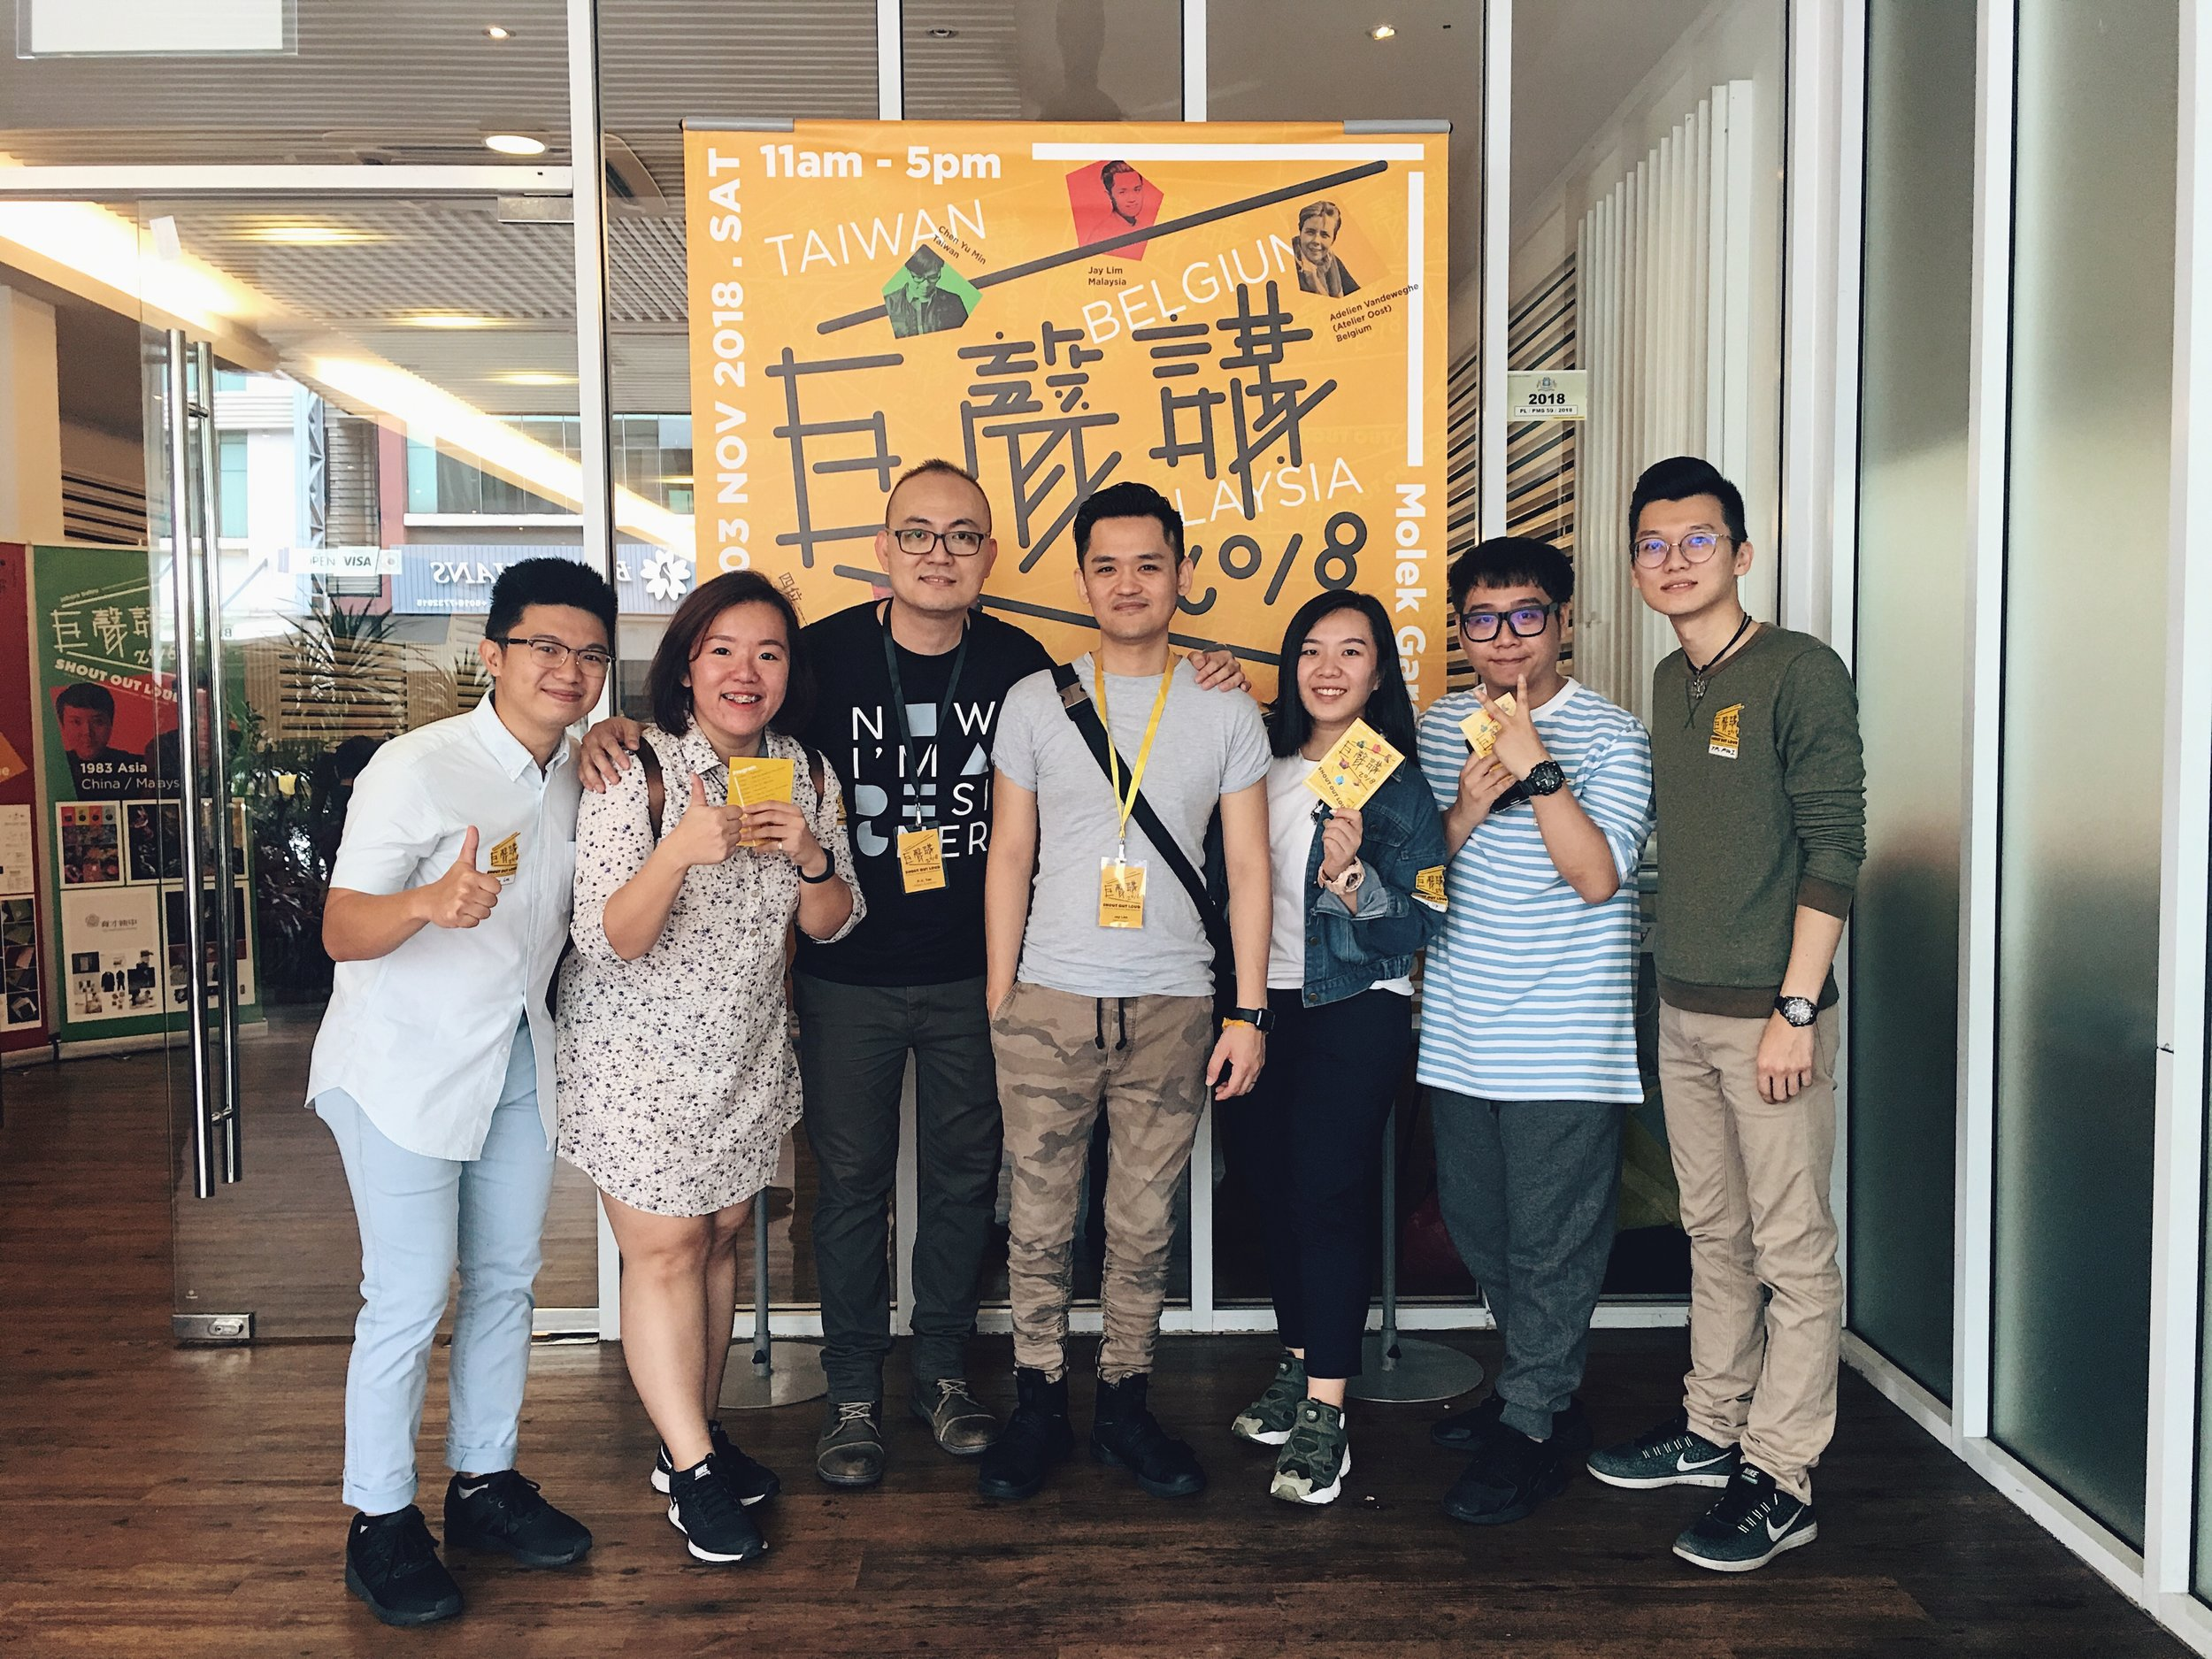 (  From left to right ) Chyuan - yours truly, Hannah, P.C.Tan - Organiser and Principal of Adego Academy, Jay Lim - Creative Director of Tsubaki and Cutout Mag., Jing Wen, Joe Shen, and Chee Ping.